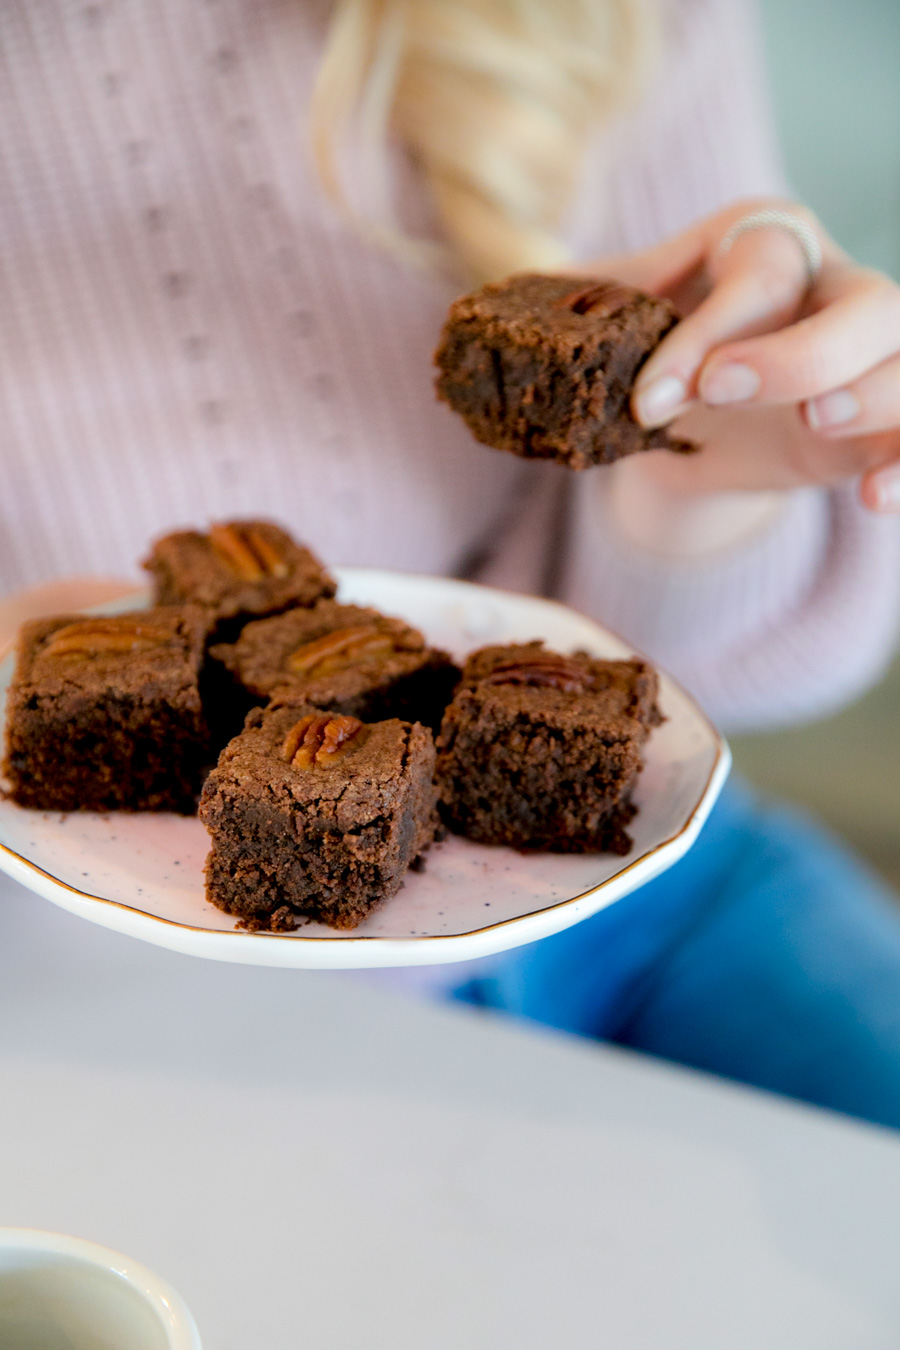 Best Brownies - Brownie Recipe with Cocoa Powder